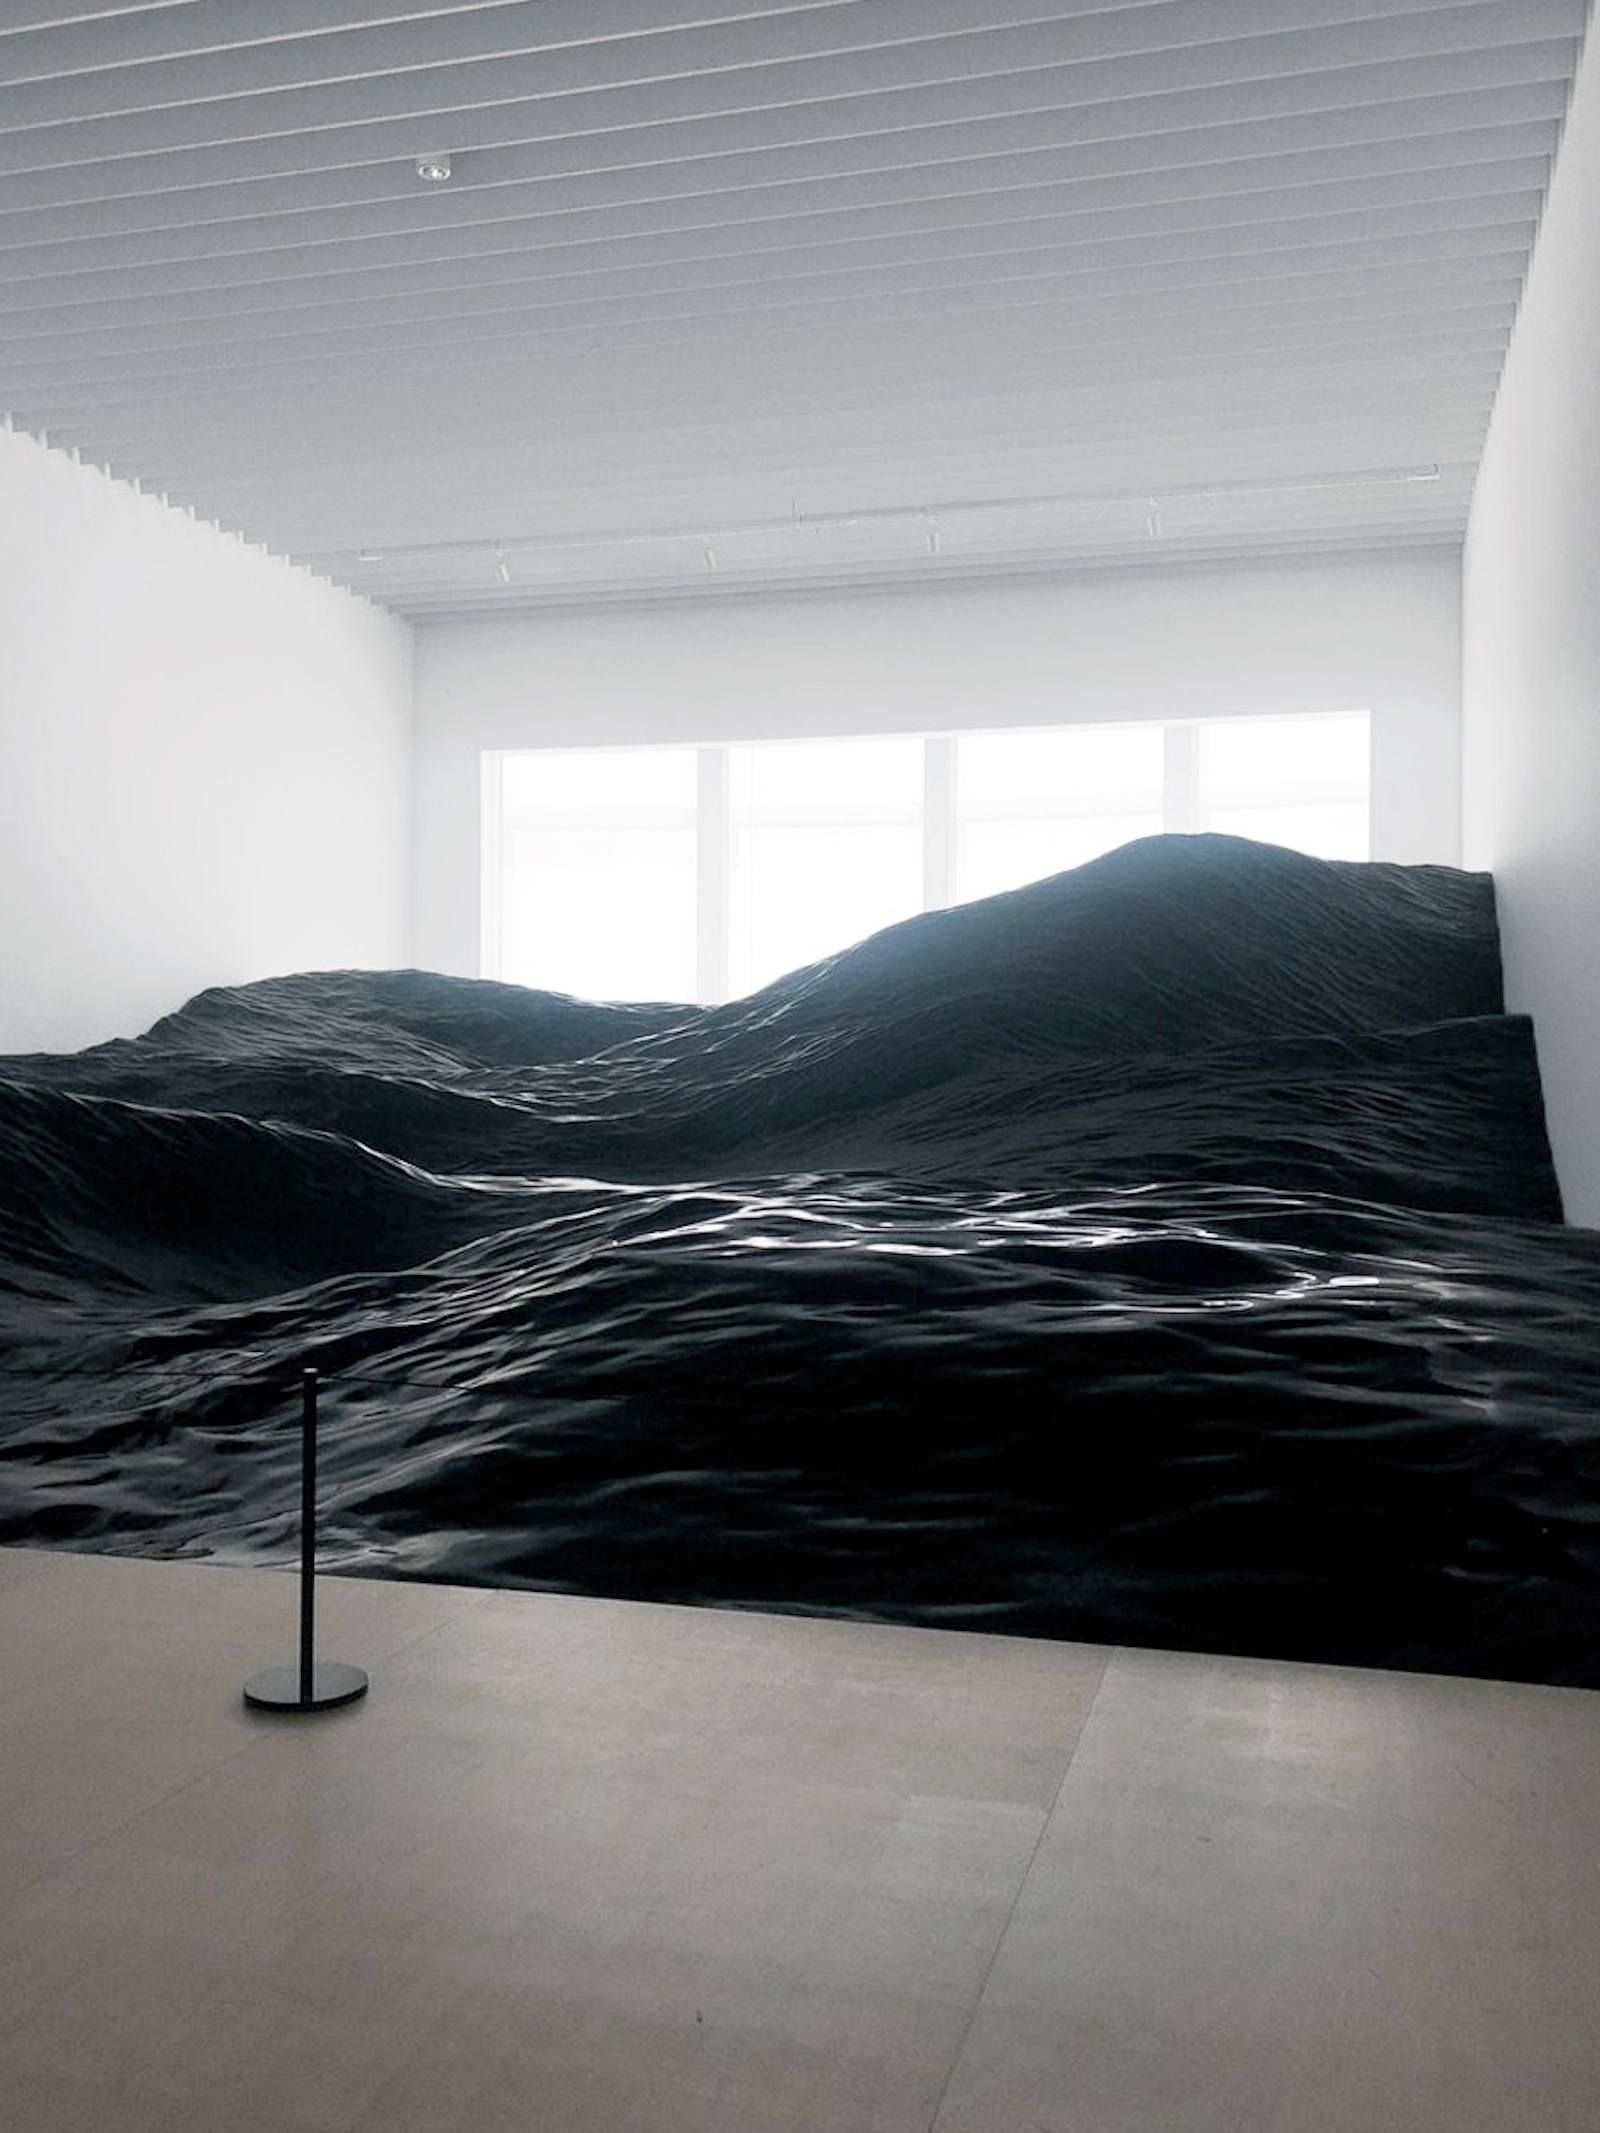 This Installation In Japan Mimics The Tumultuous Nature Of Ocean Waves - IGNANT